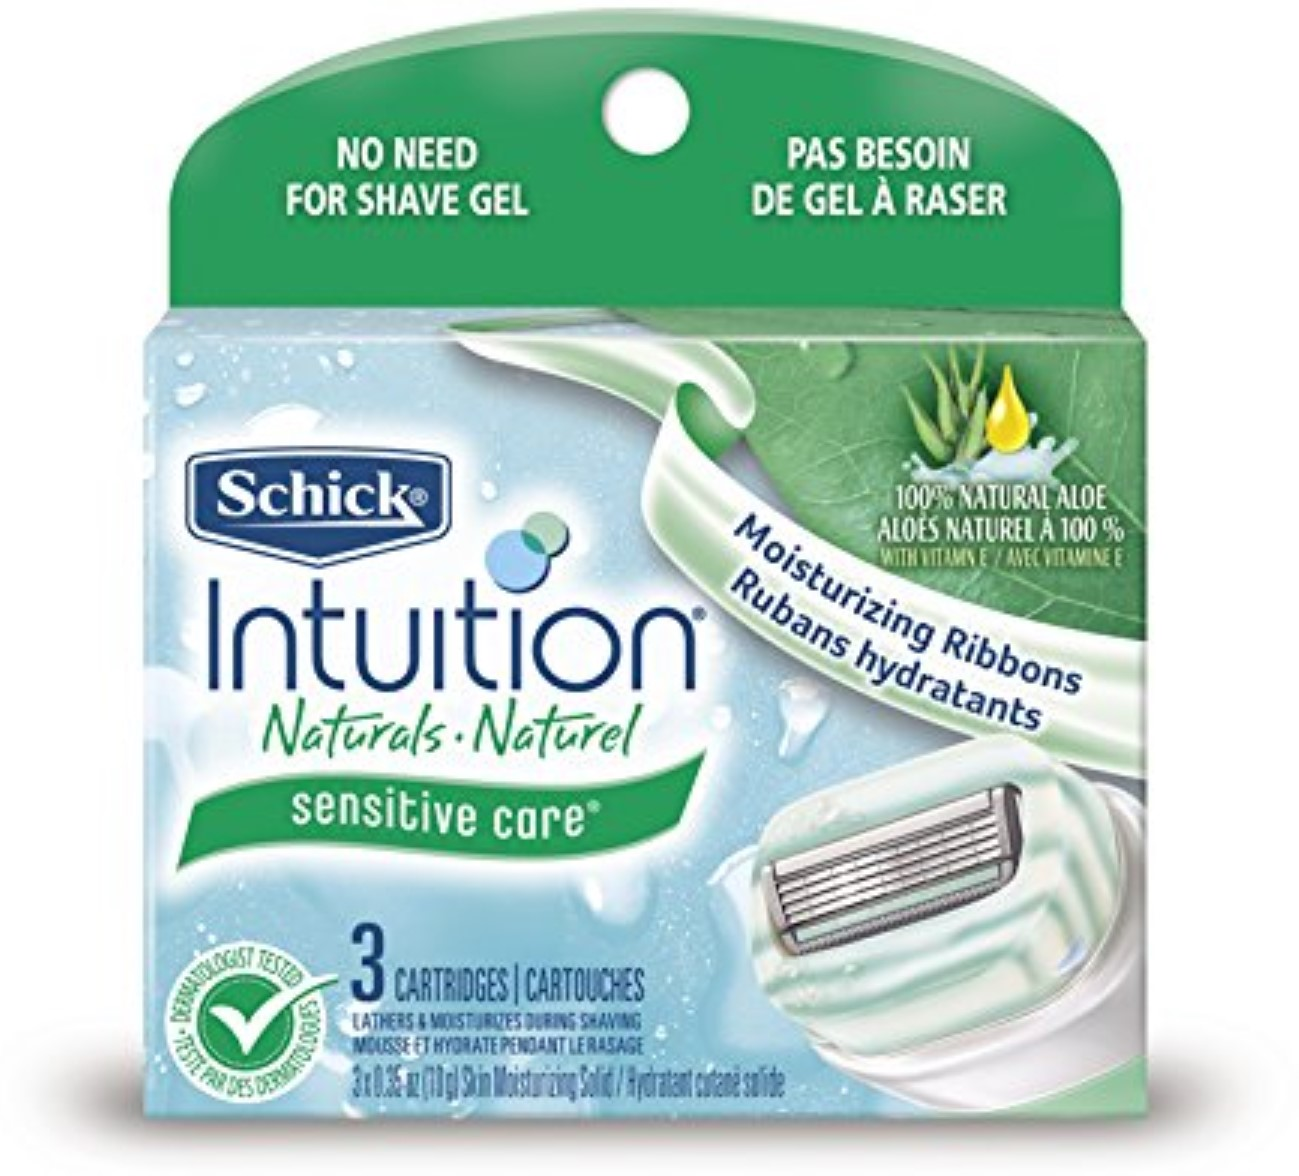 Schick Intuition Naturals Cartridges, Sensitive Care 3 ea (Pack of 6)